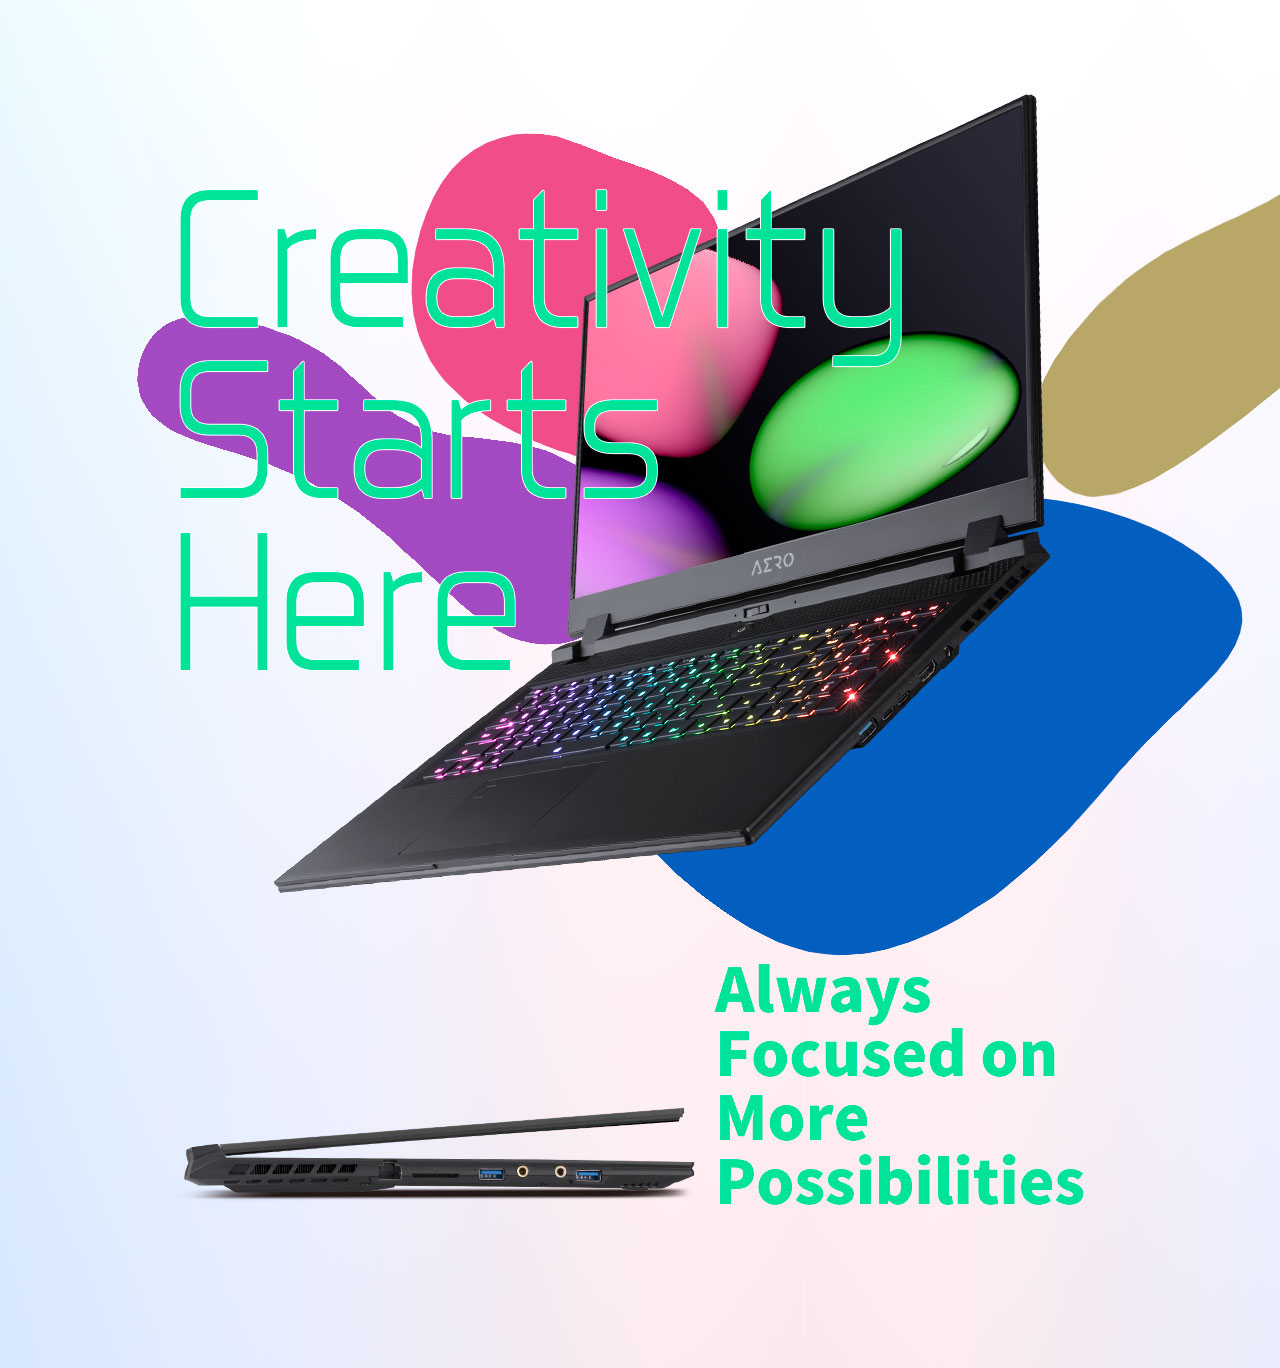 a laptop in a colorful background